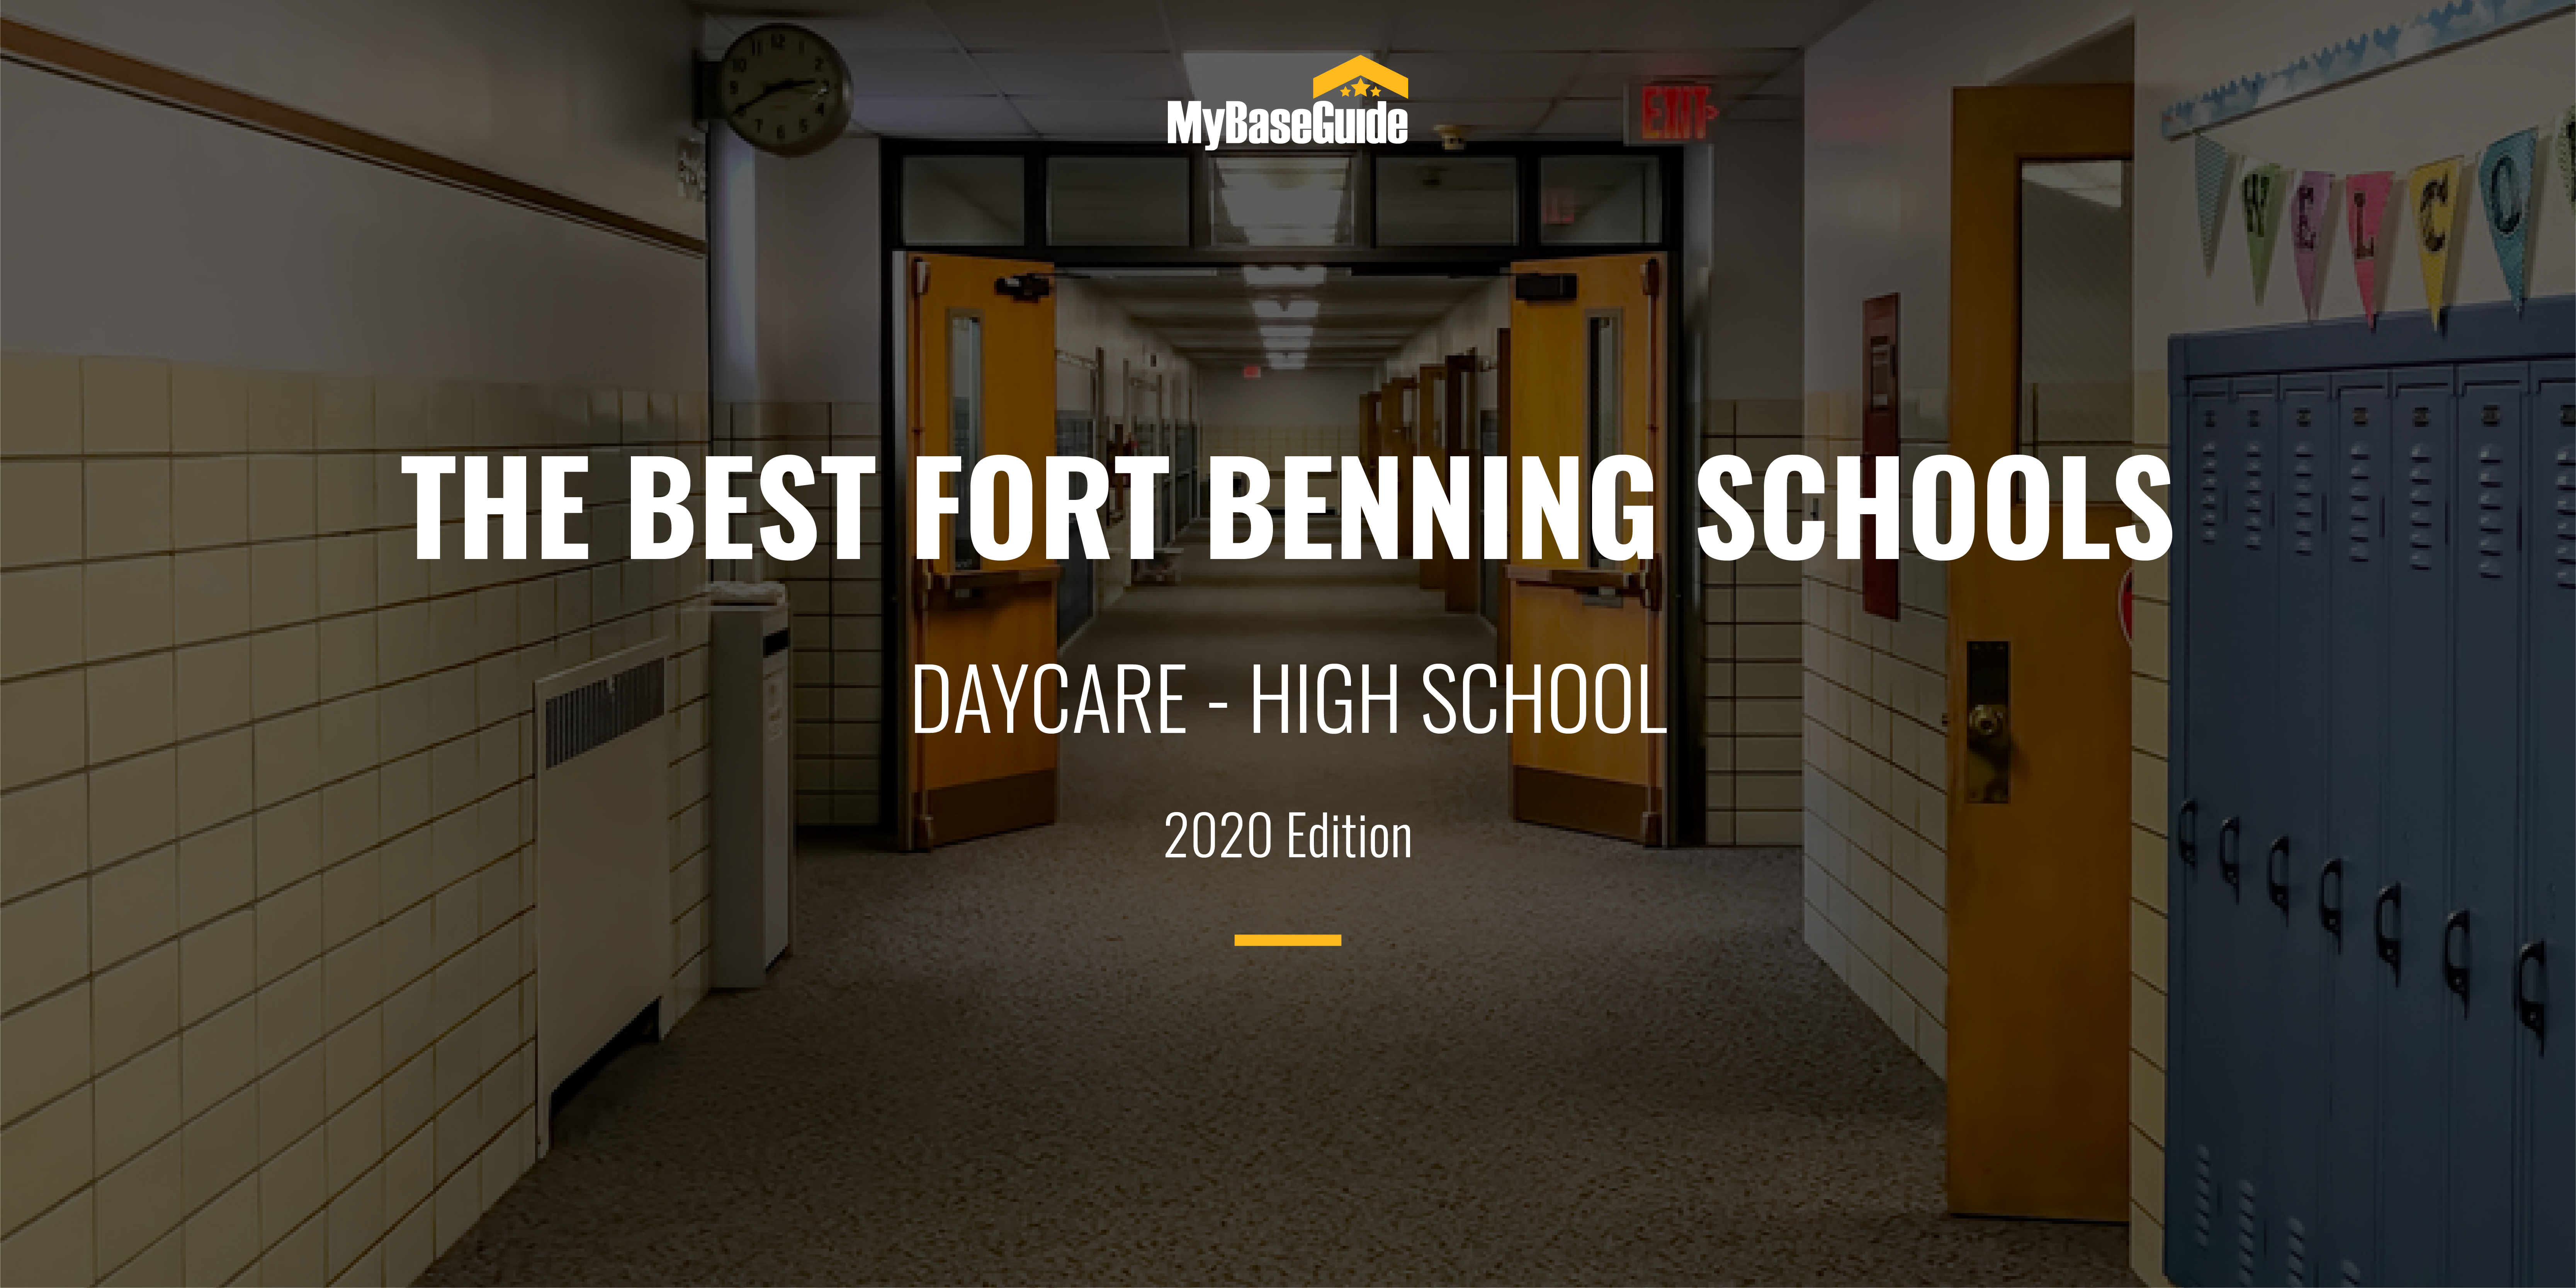 The Best Fort Benning Schools